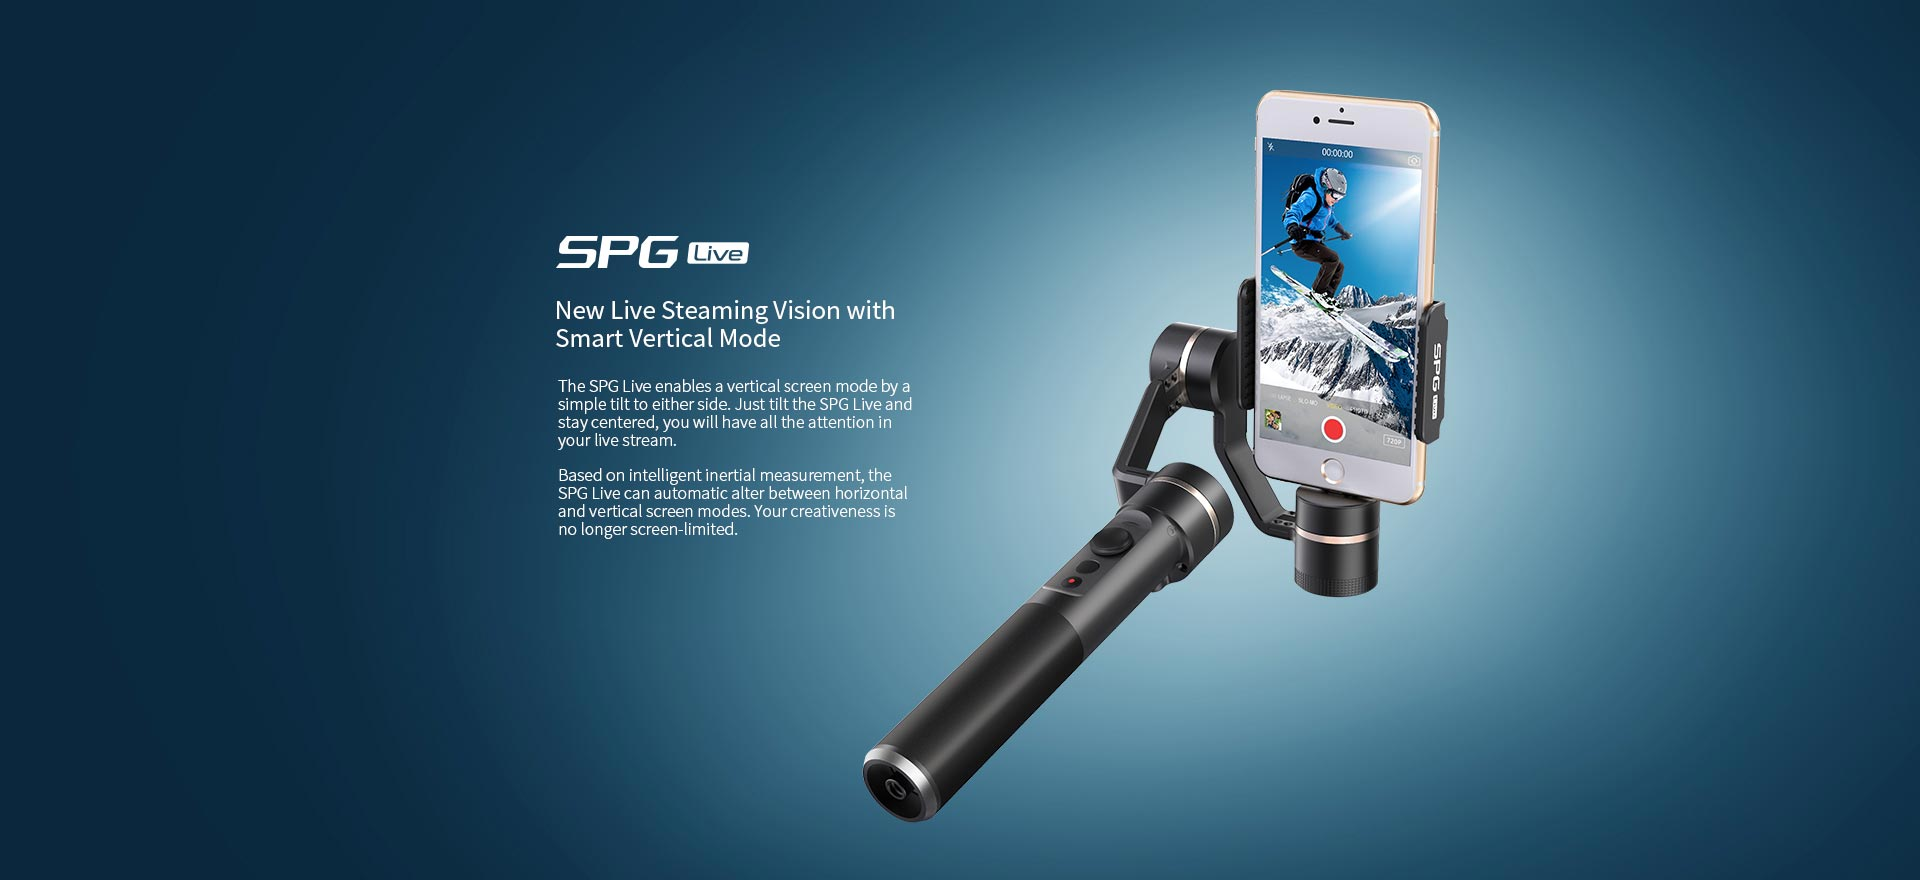 Feiyu Spg Live 3 Axis Handheld Gimbal For Iphone Steady Smartphones Extra Battrey